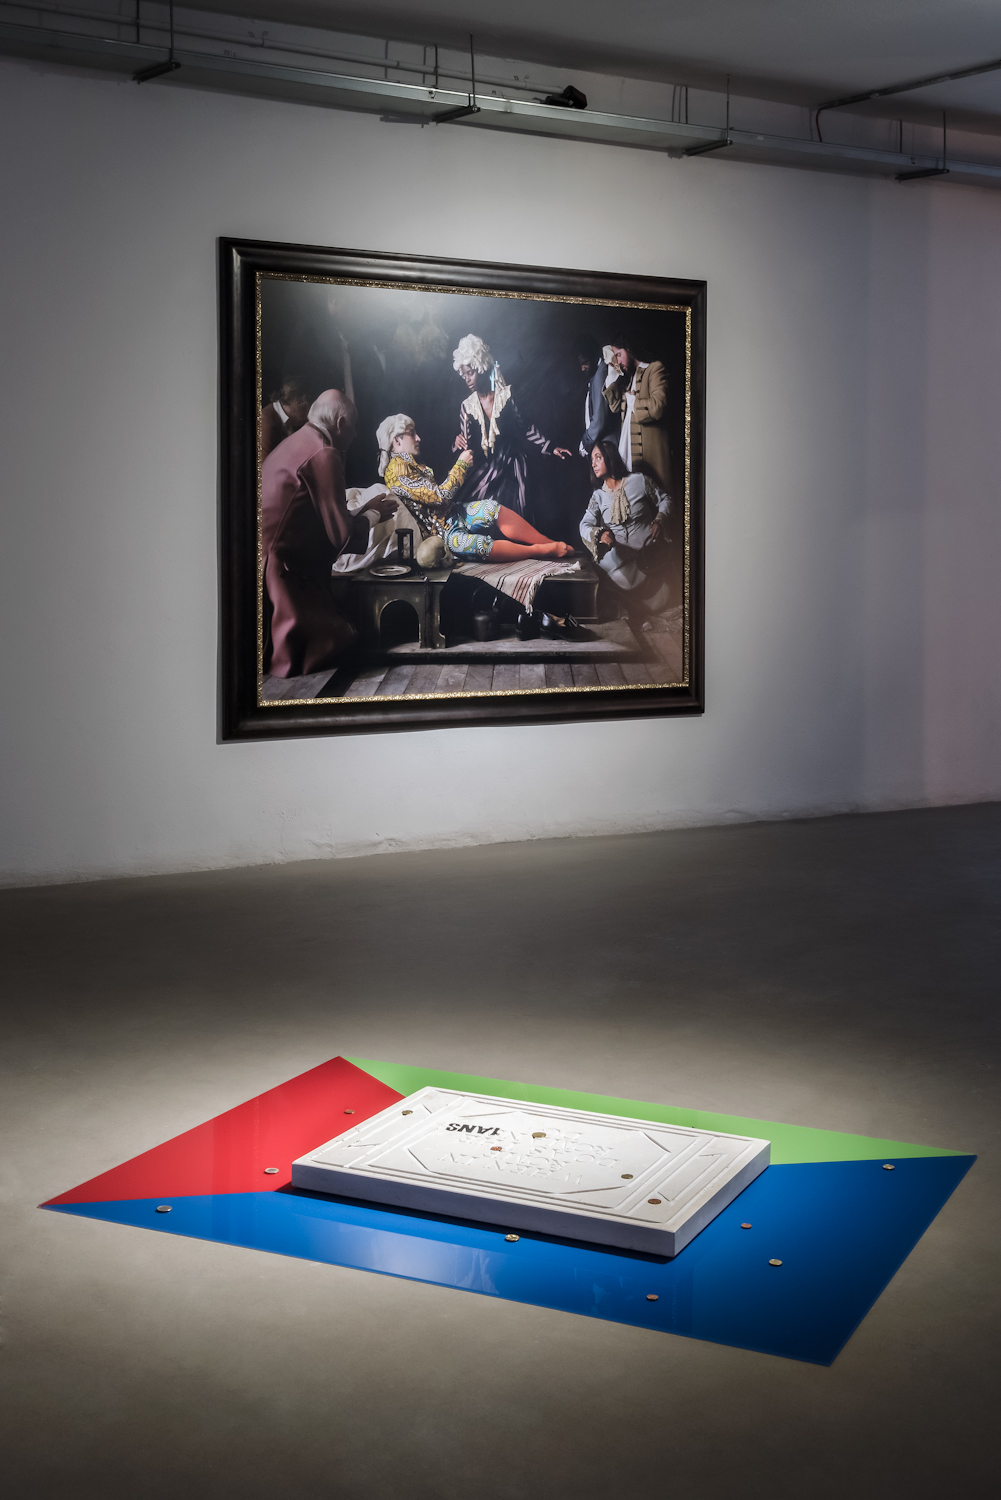 Na pierwszym planie: Slavs and Tatars, When in Rome, 2010, kolekcja MWW. W tle: Yinka Shonibare, Fake Death Picture (The Death of St Francis — Bartolomé Carducho), 2011, kolekcja MWW